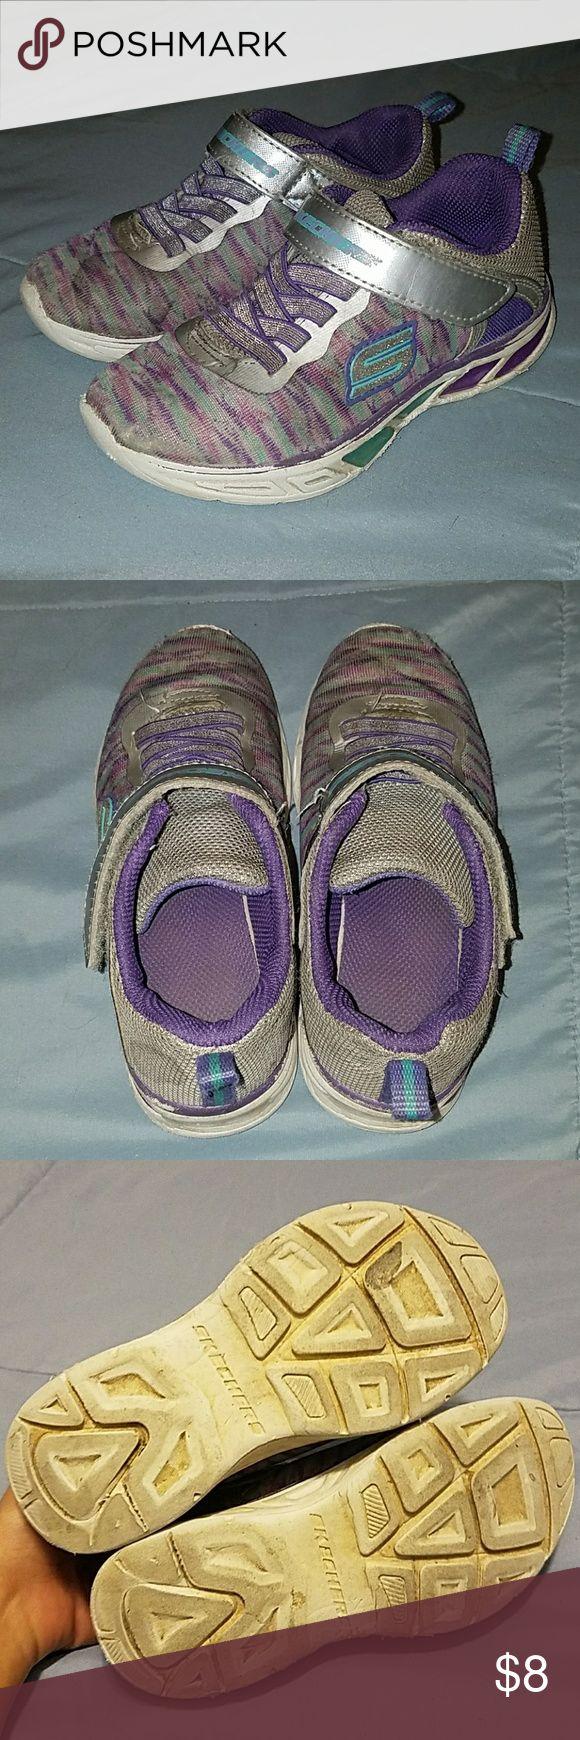 Light up Skechers Pre-loved light up Skechers for girls Pictures show wear but there's still good tread on the souls! Skechers Shoes Sneakers